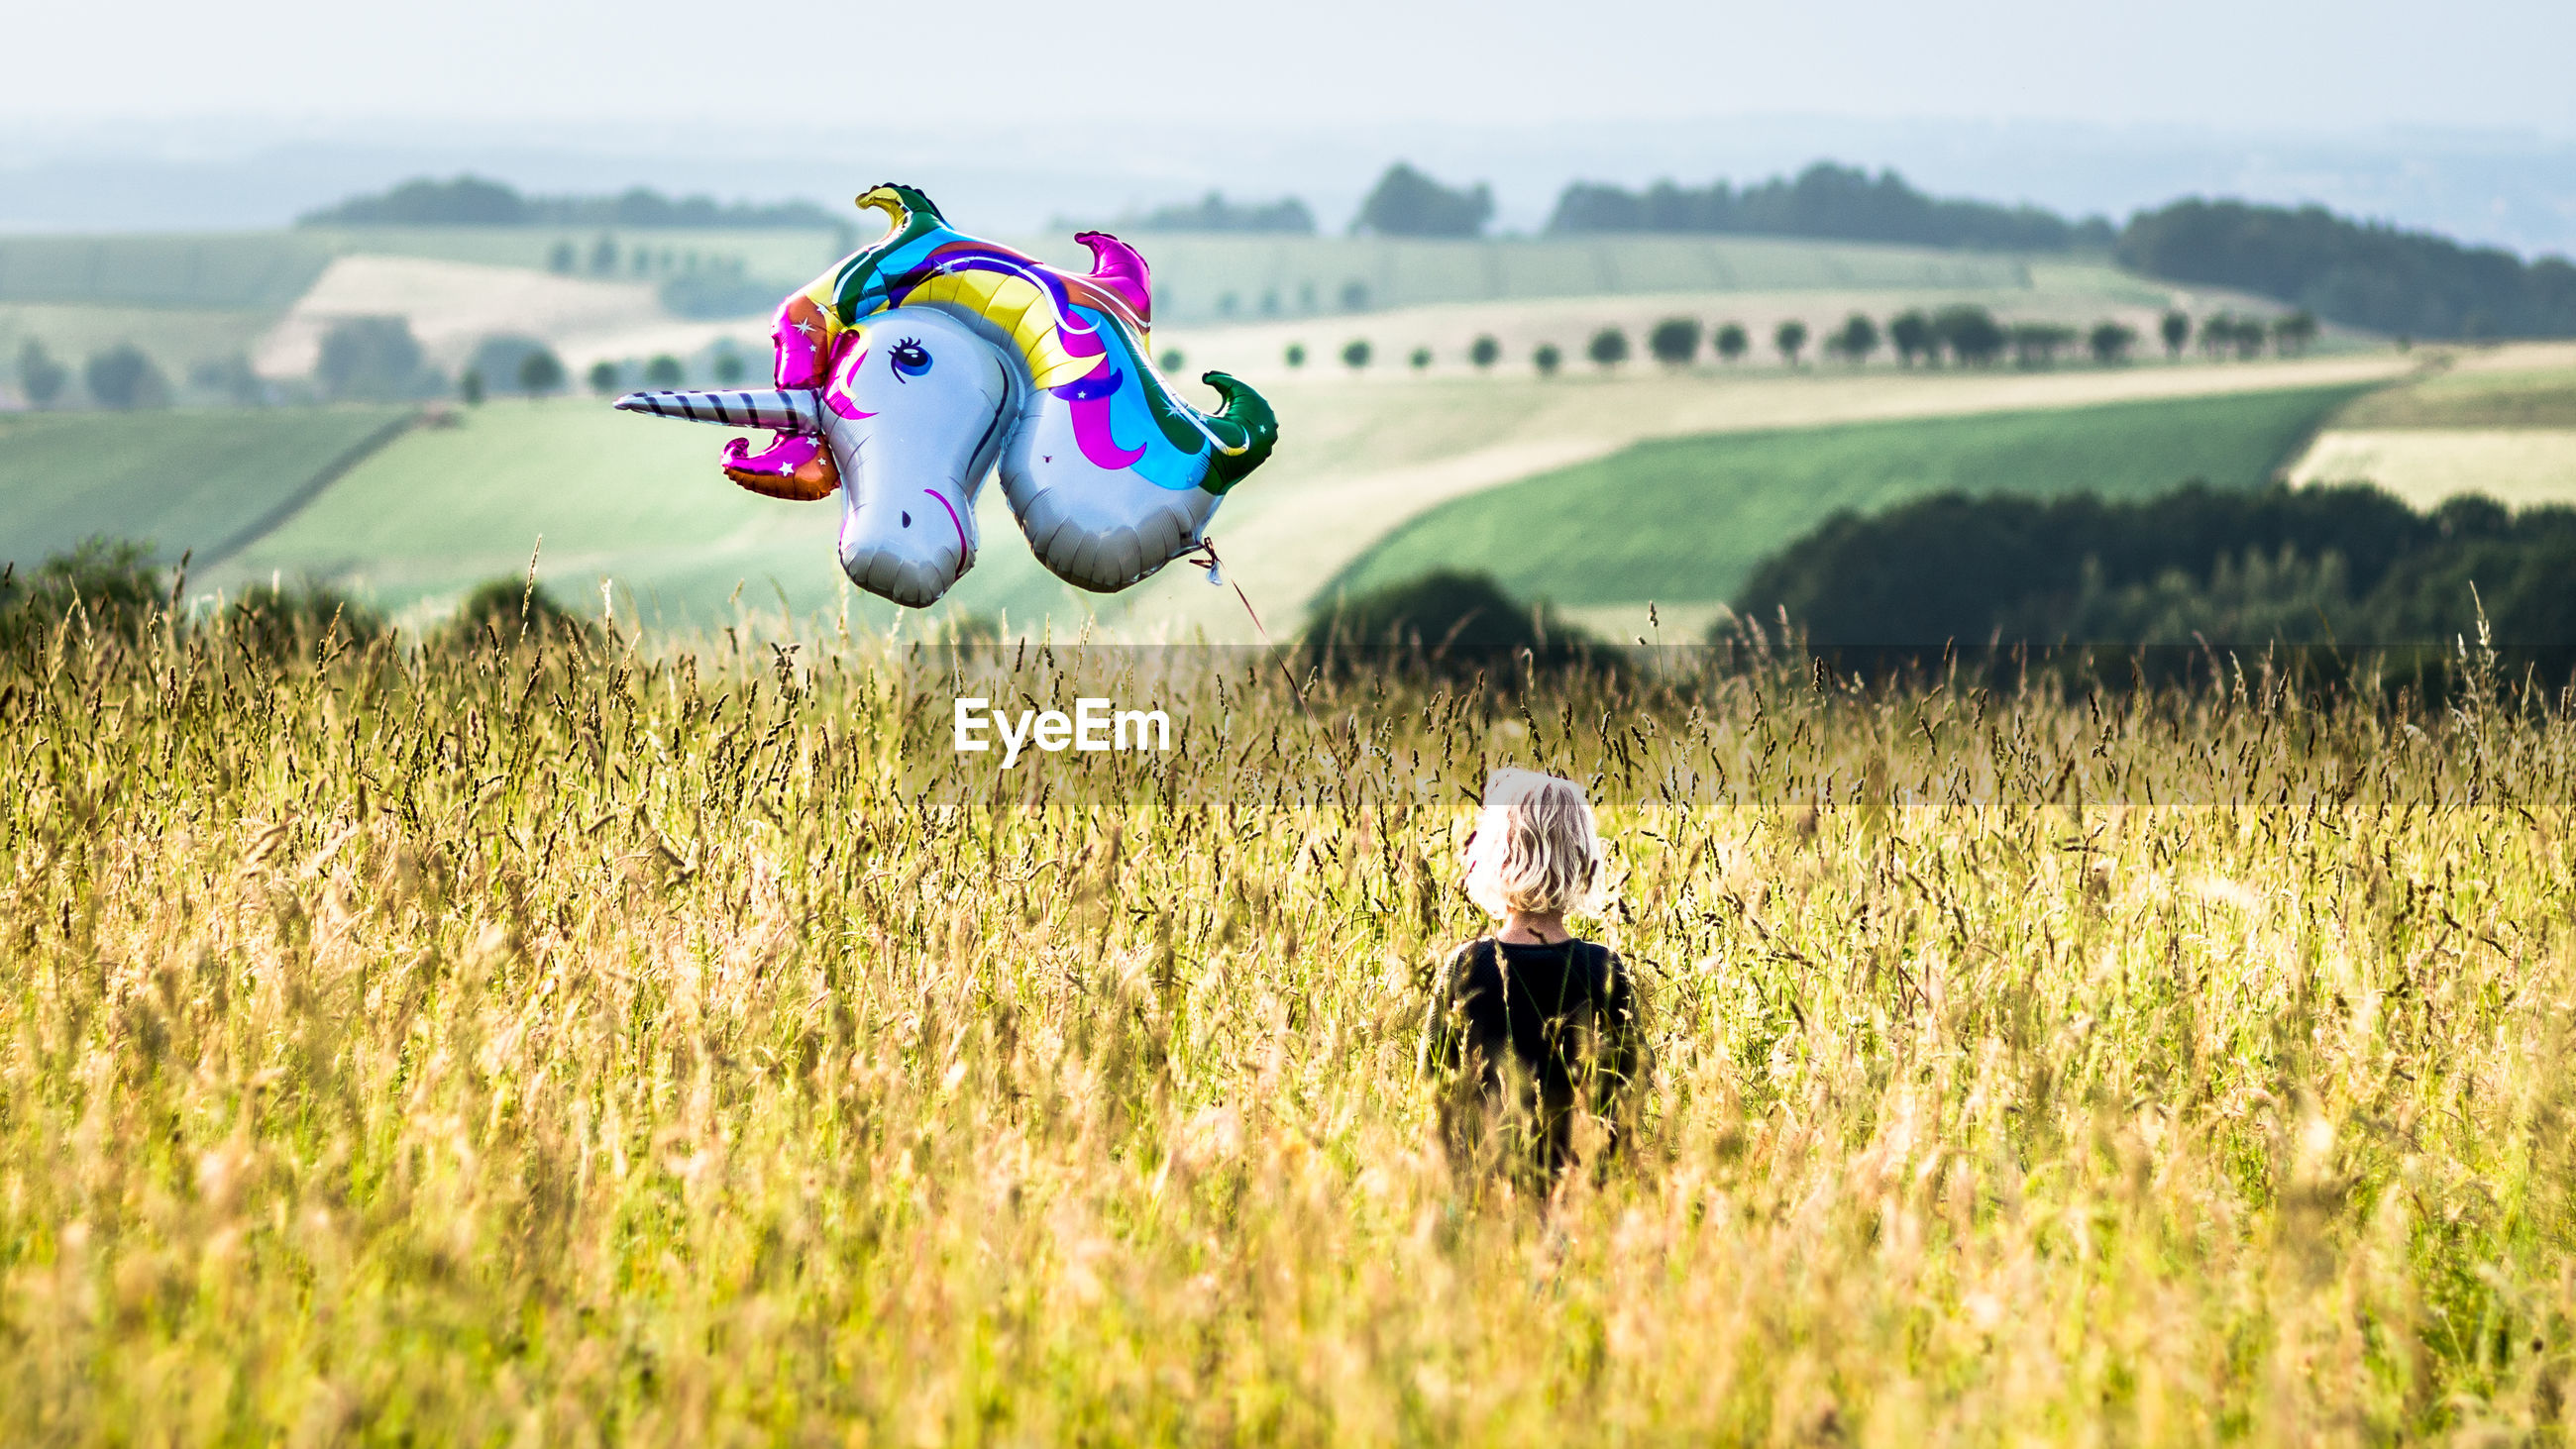 Rear view of girl holding unicorn balloon standing on field